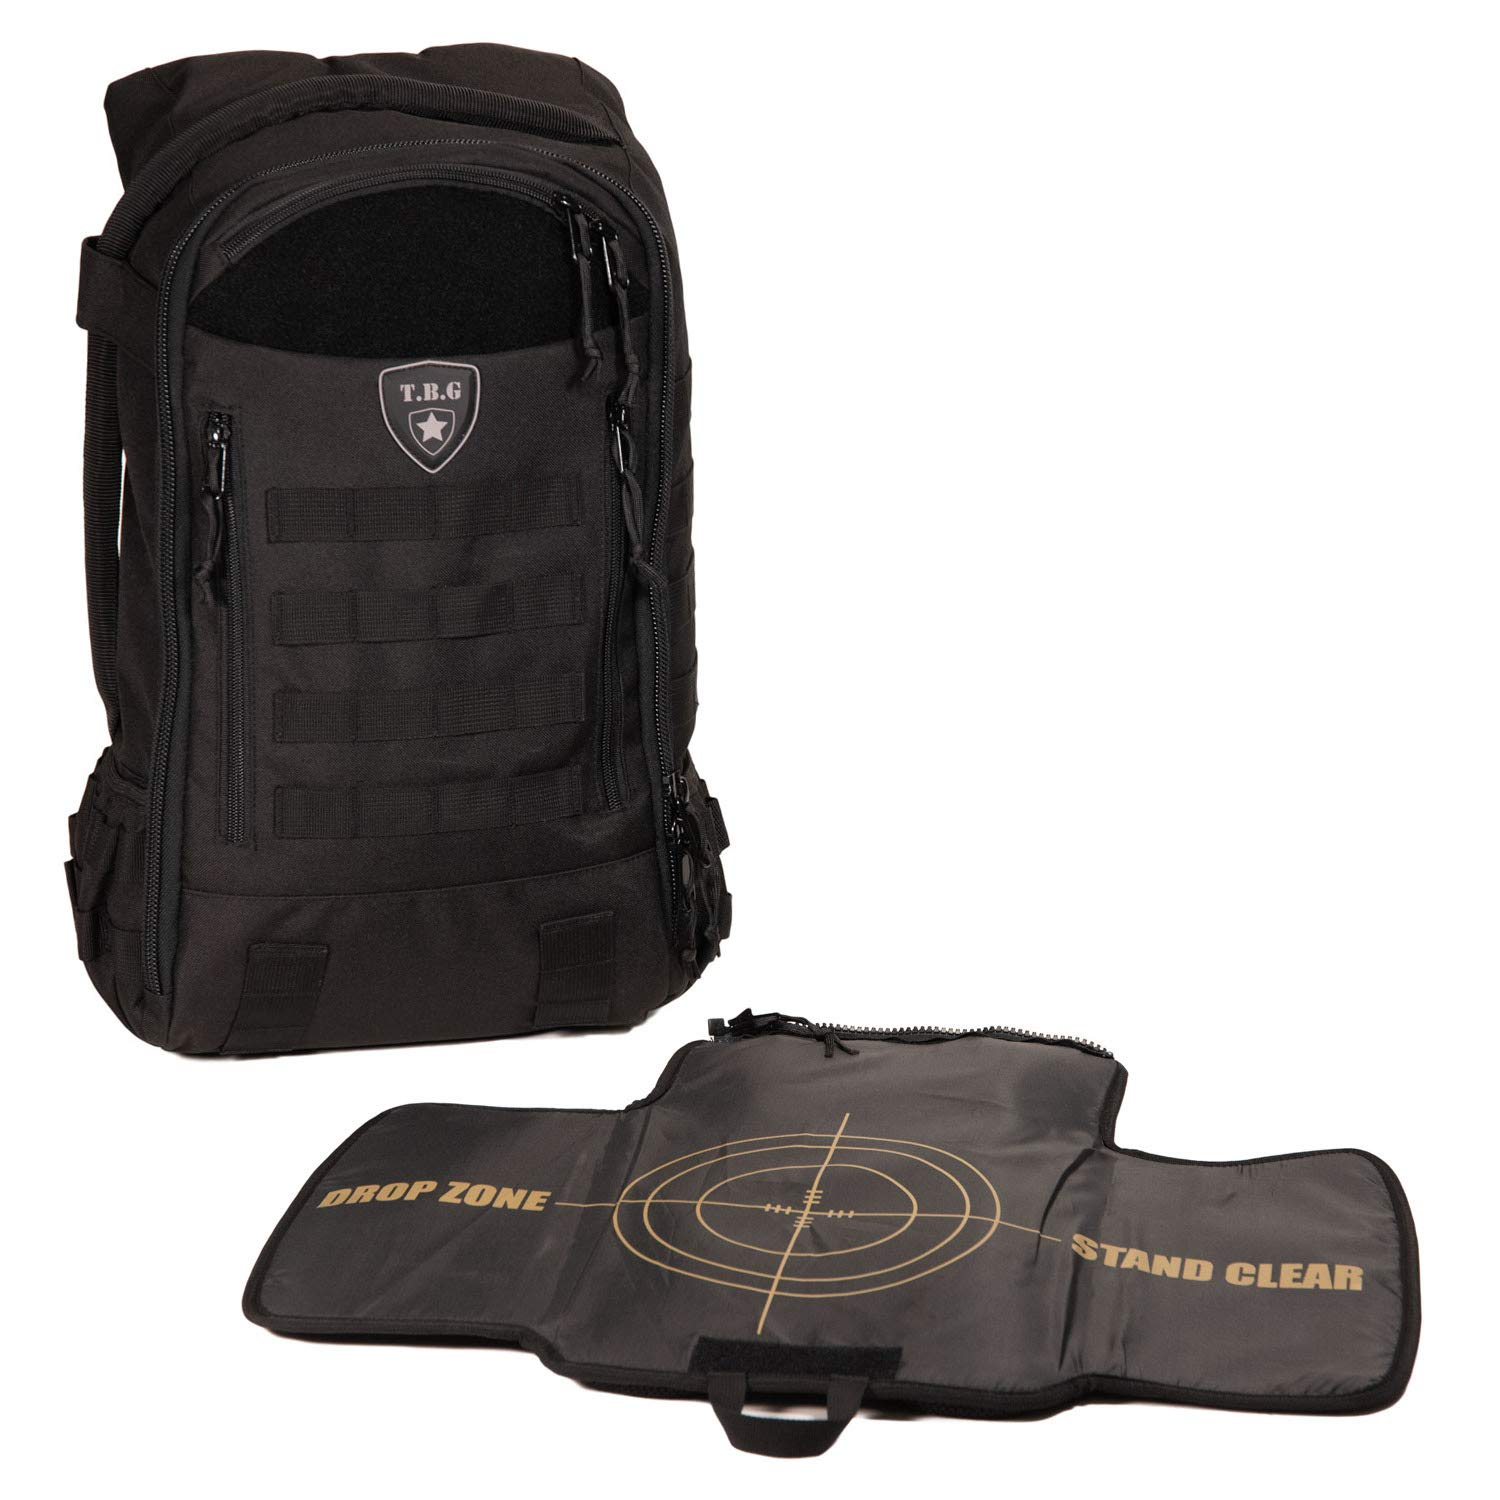 Tactical Baby Gear Daypack 3.0 Tactical Diaper Bag Backpack and Changing Mat (Black)